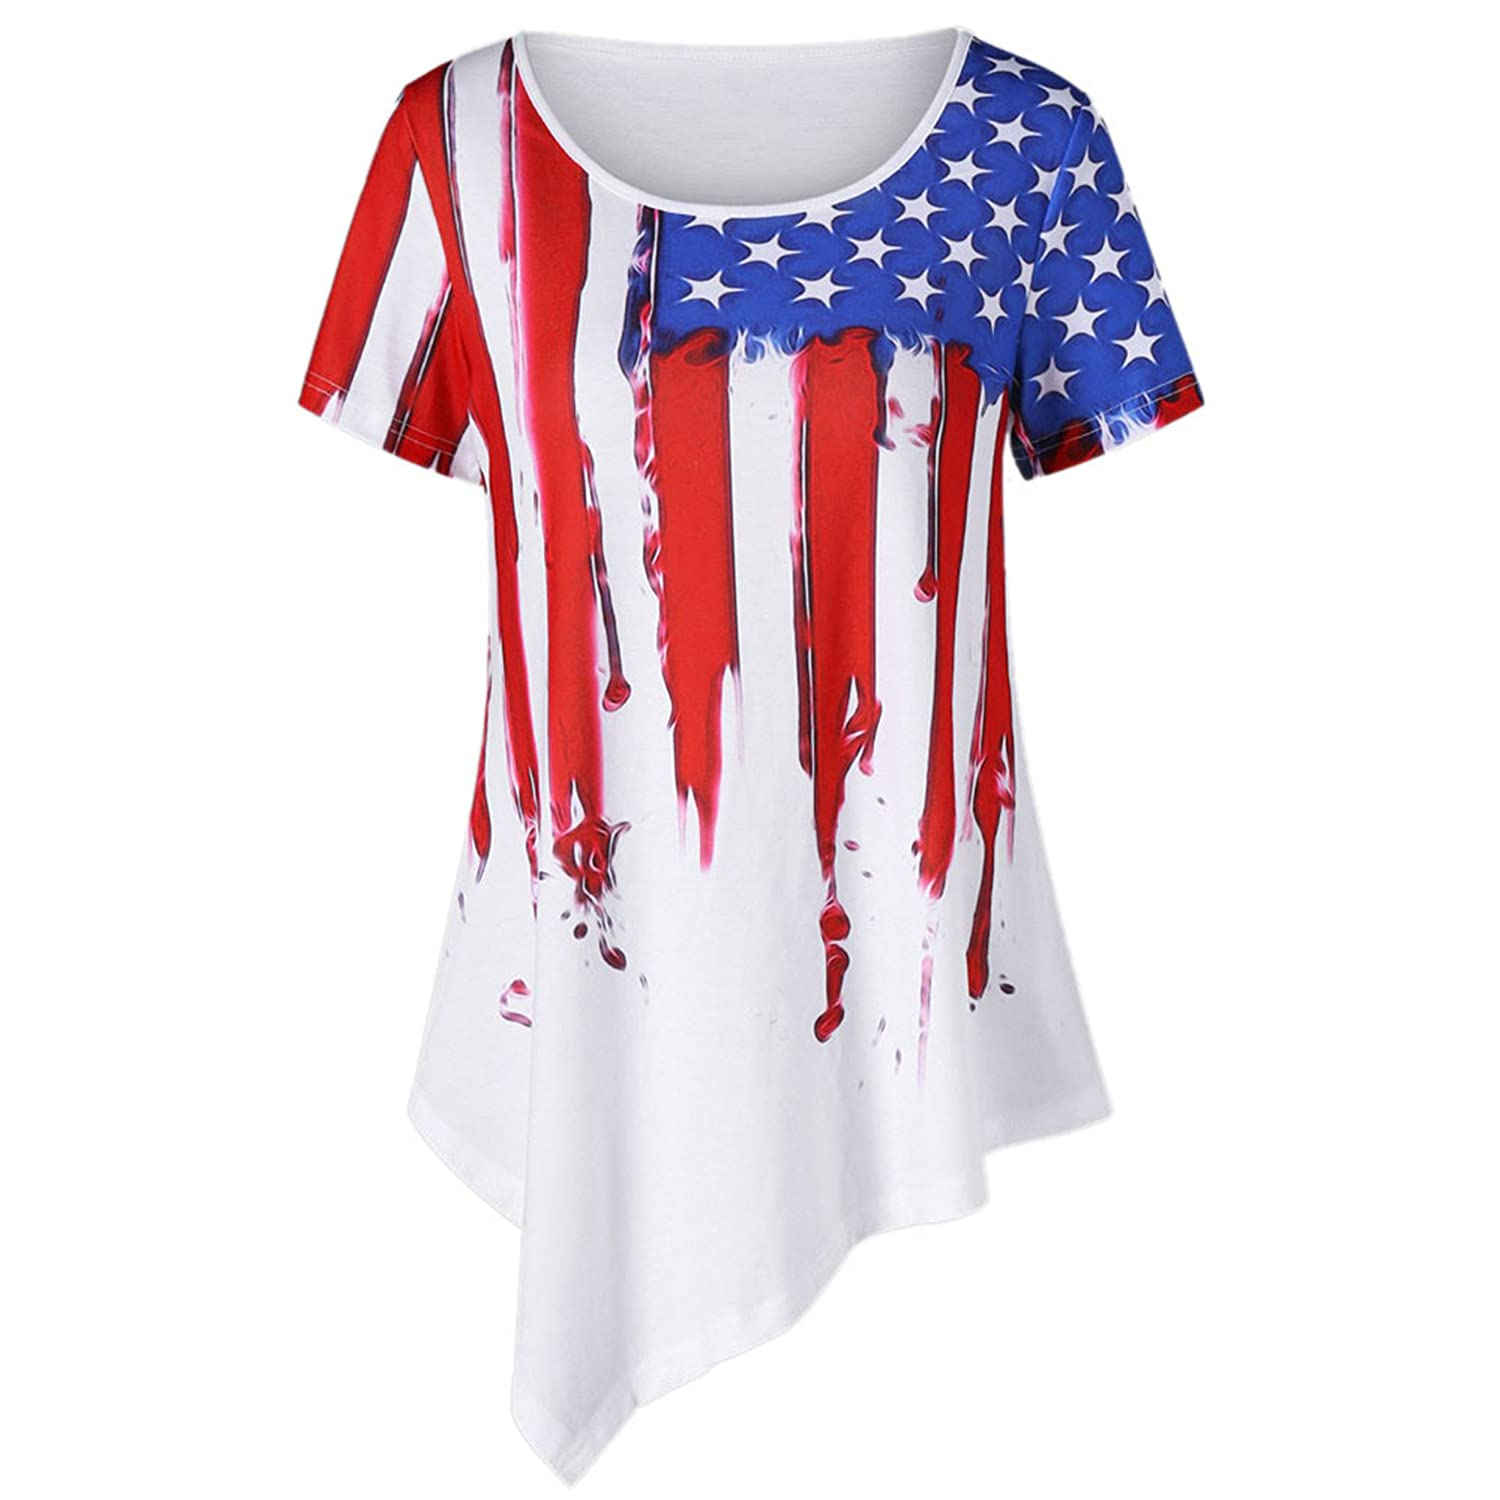 c8c190087377 Top 10 wholesale Plus Size American Flag Clothing - Chinabrands.com